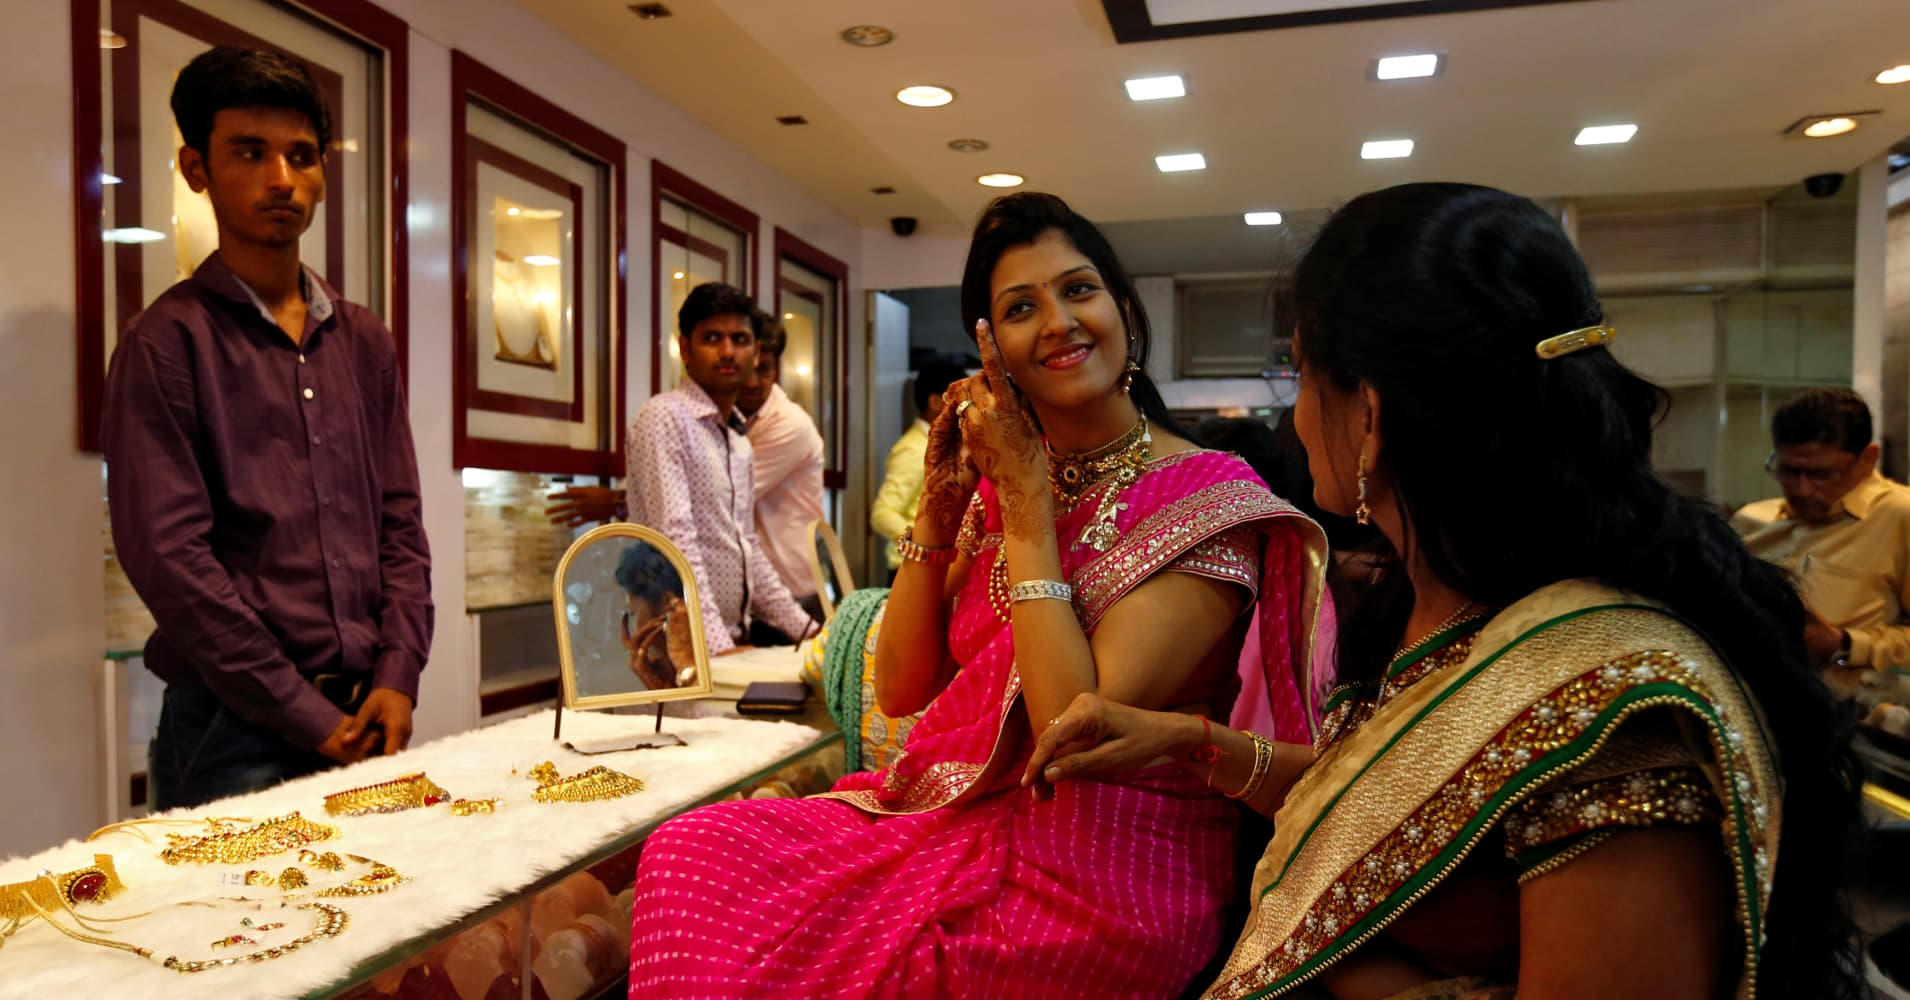 Here S How India S Wealthiest Families Are Seeking To Stay Wealthy